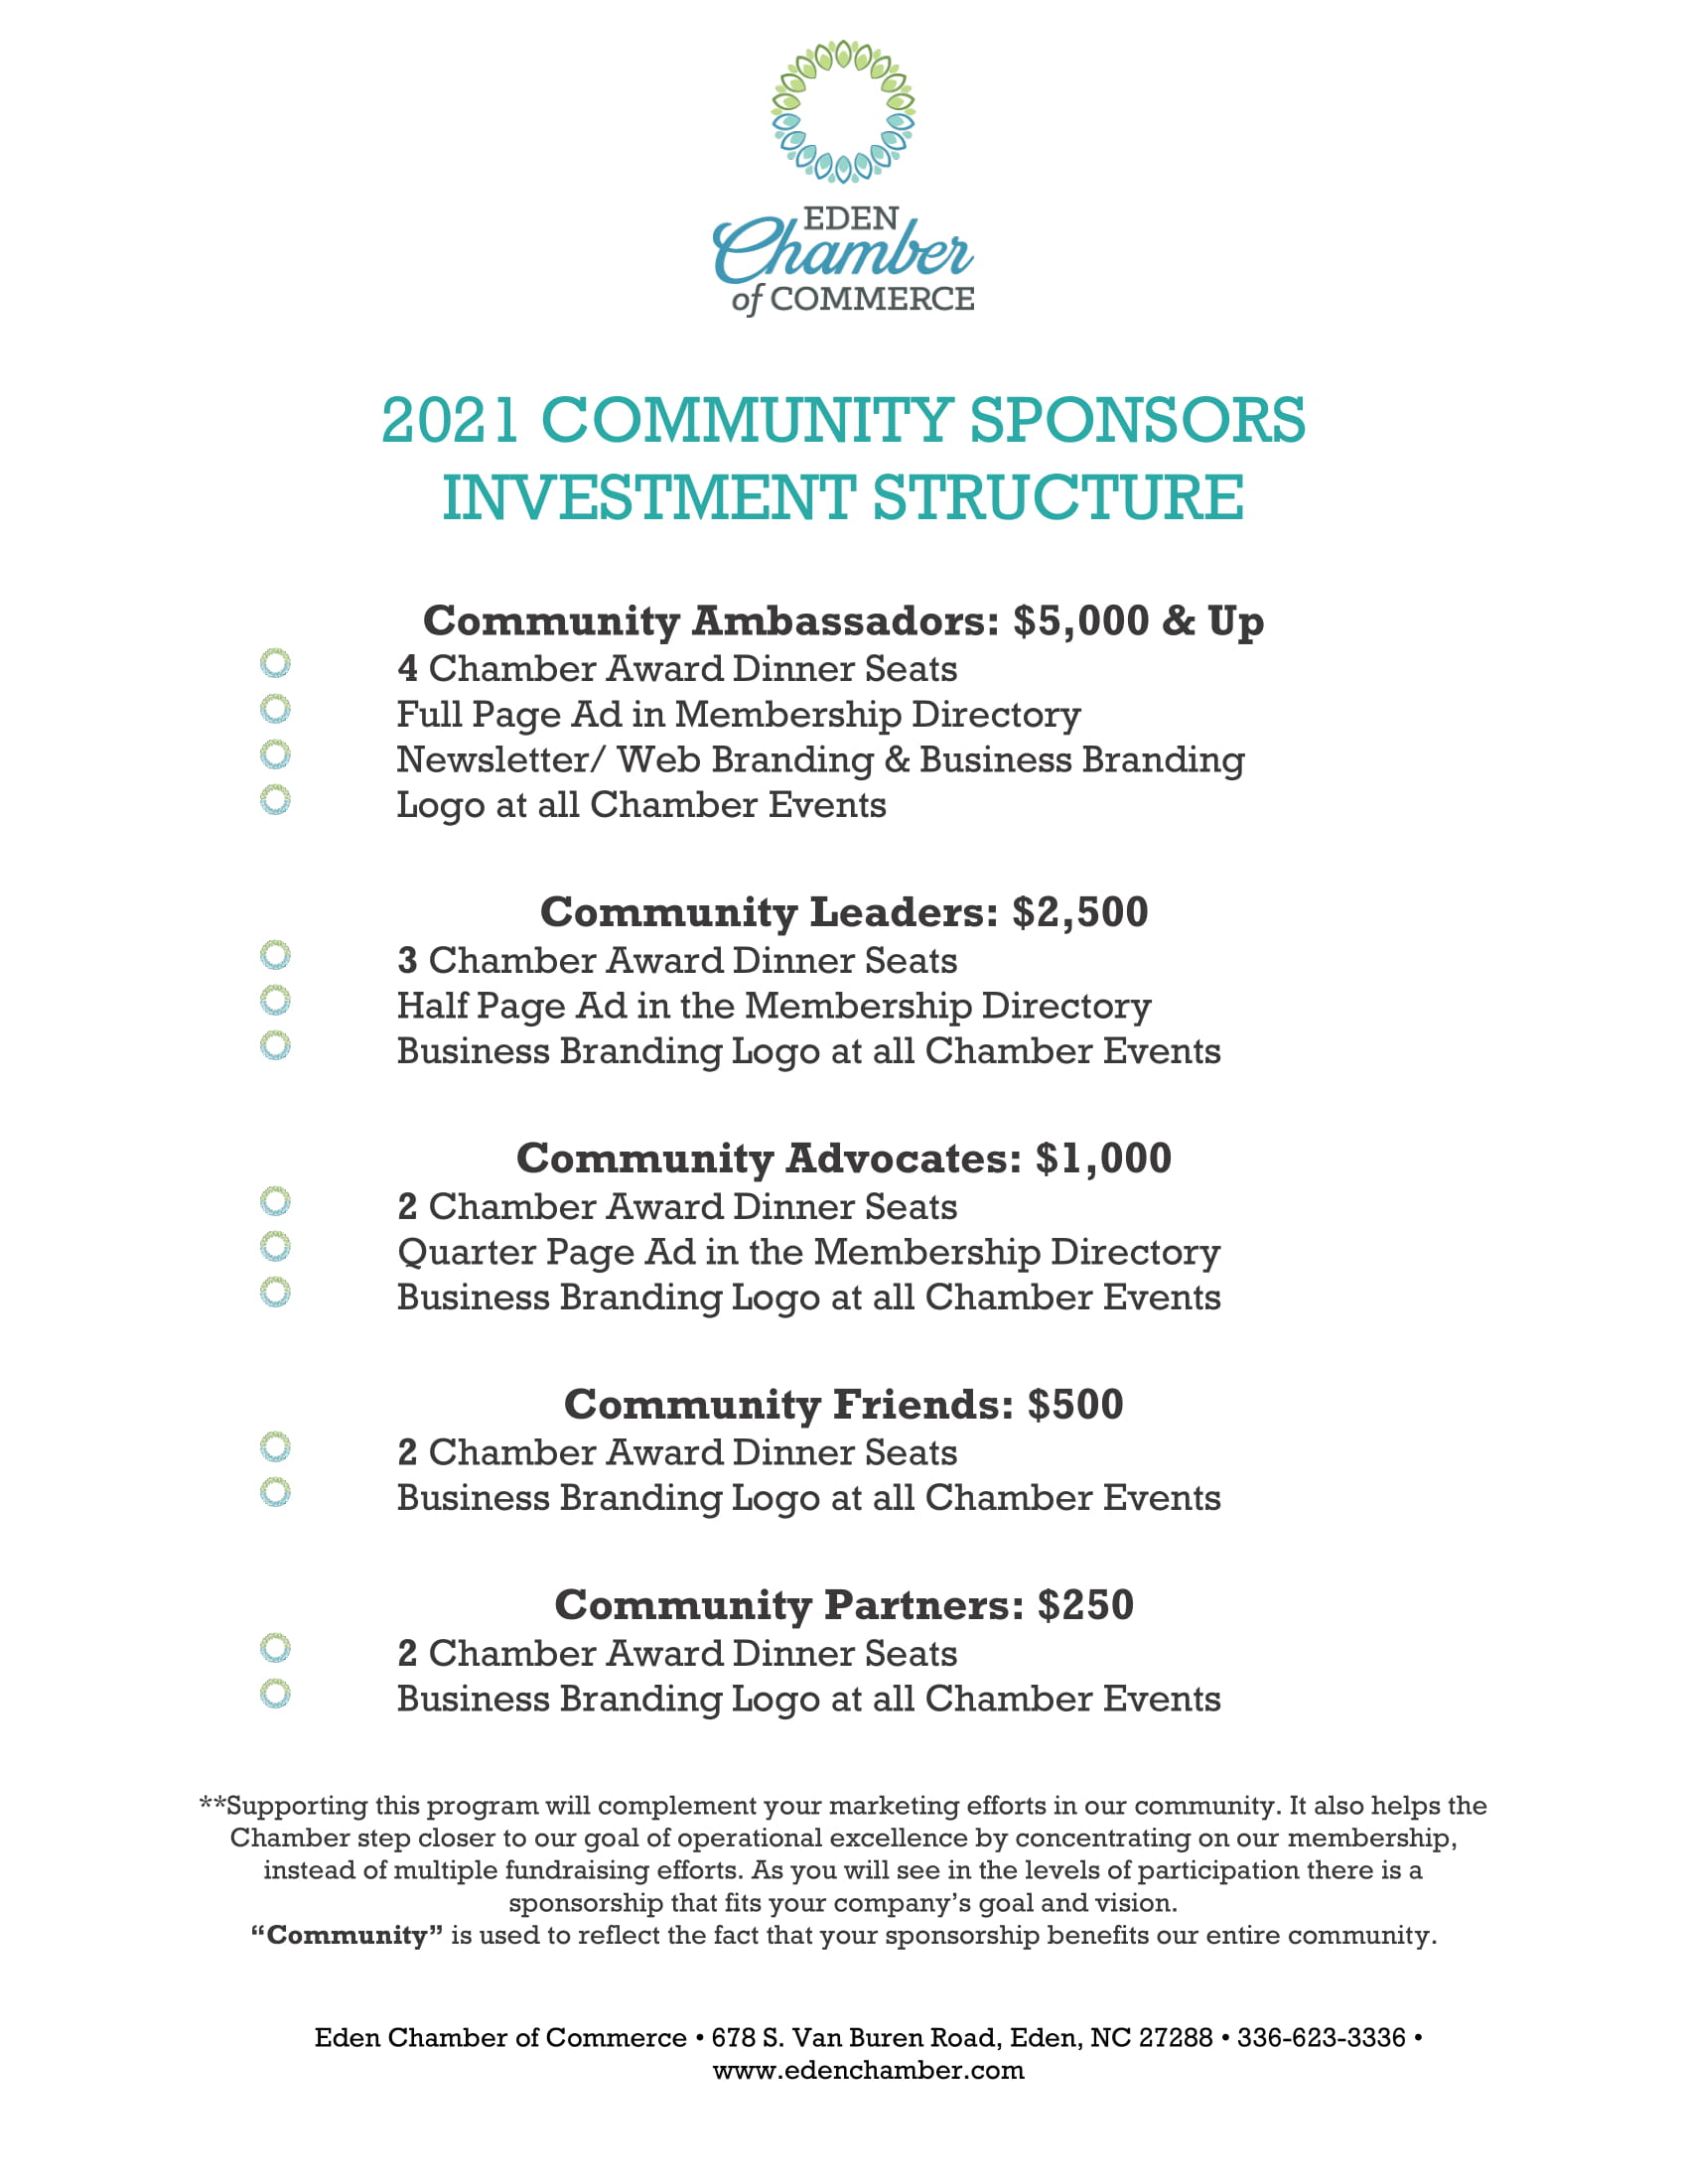 2021 Community Sponsors Investment Structure-1